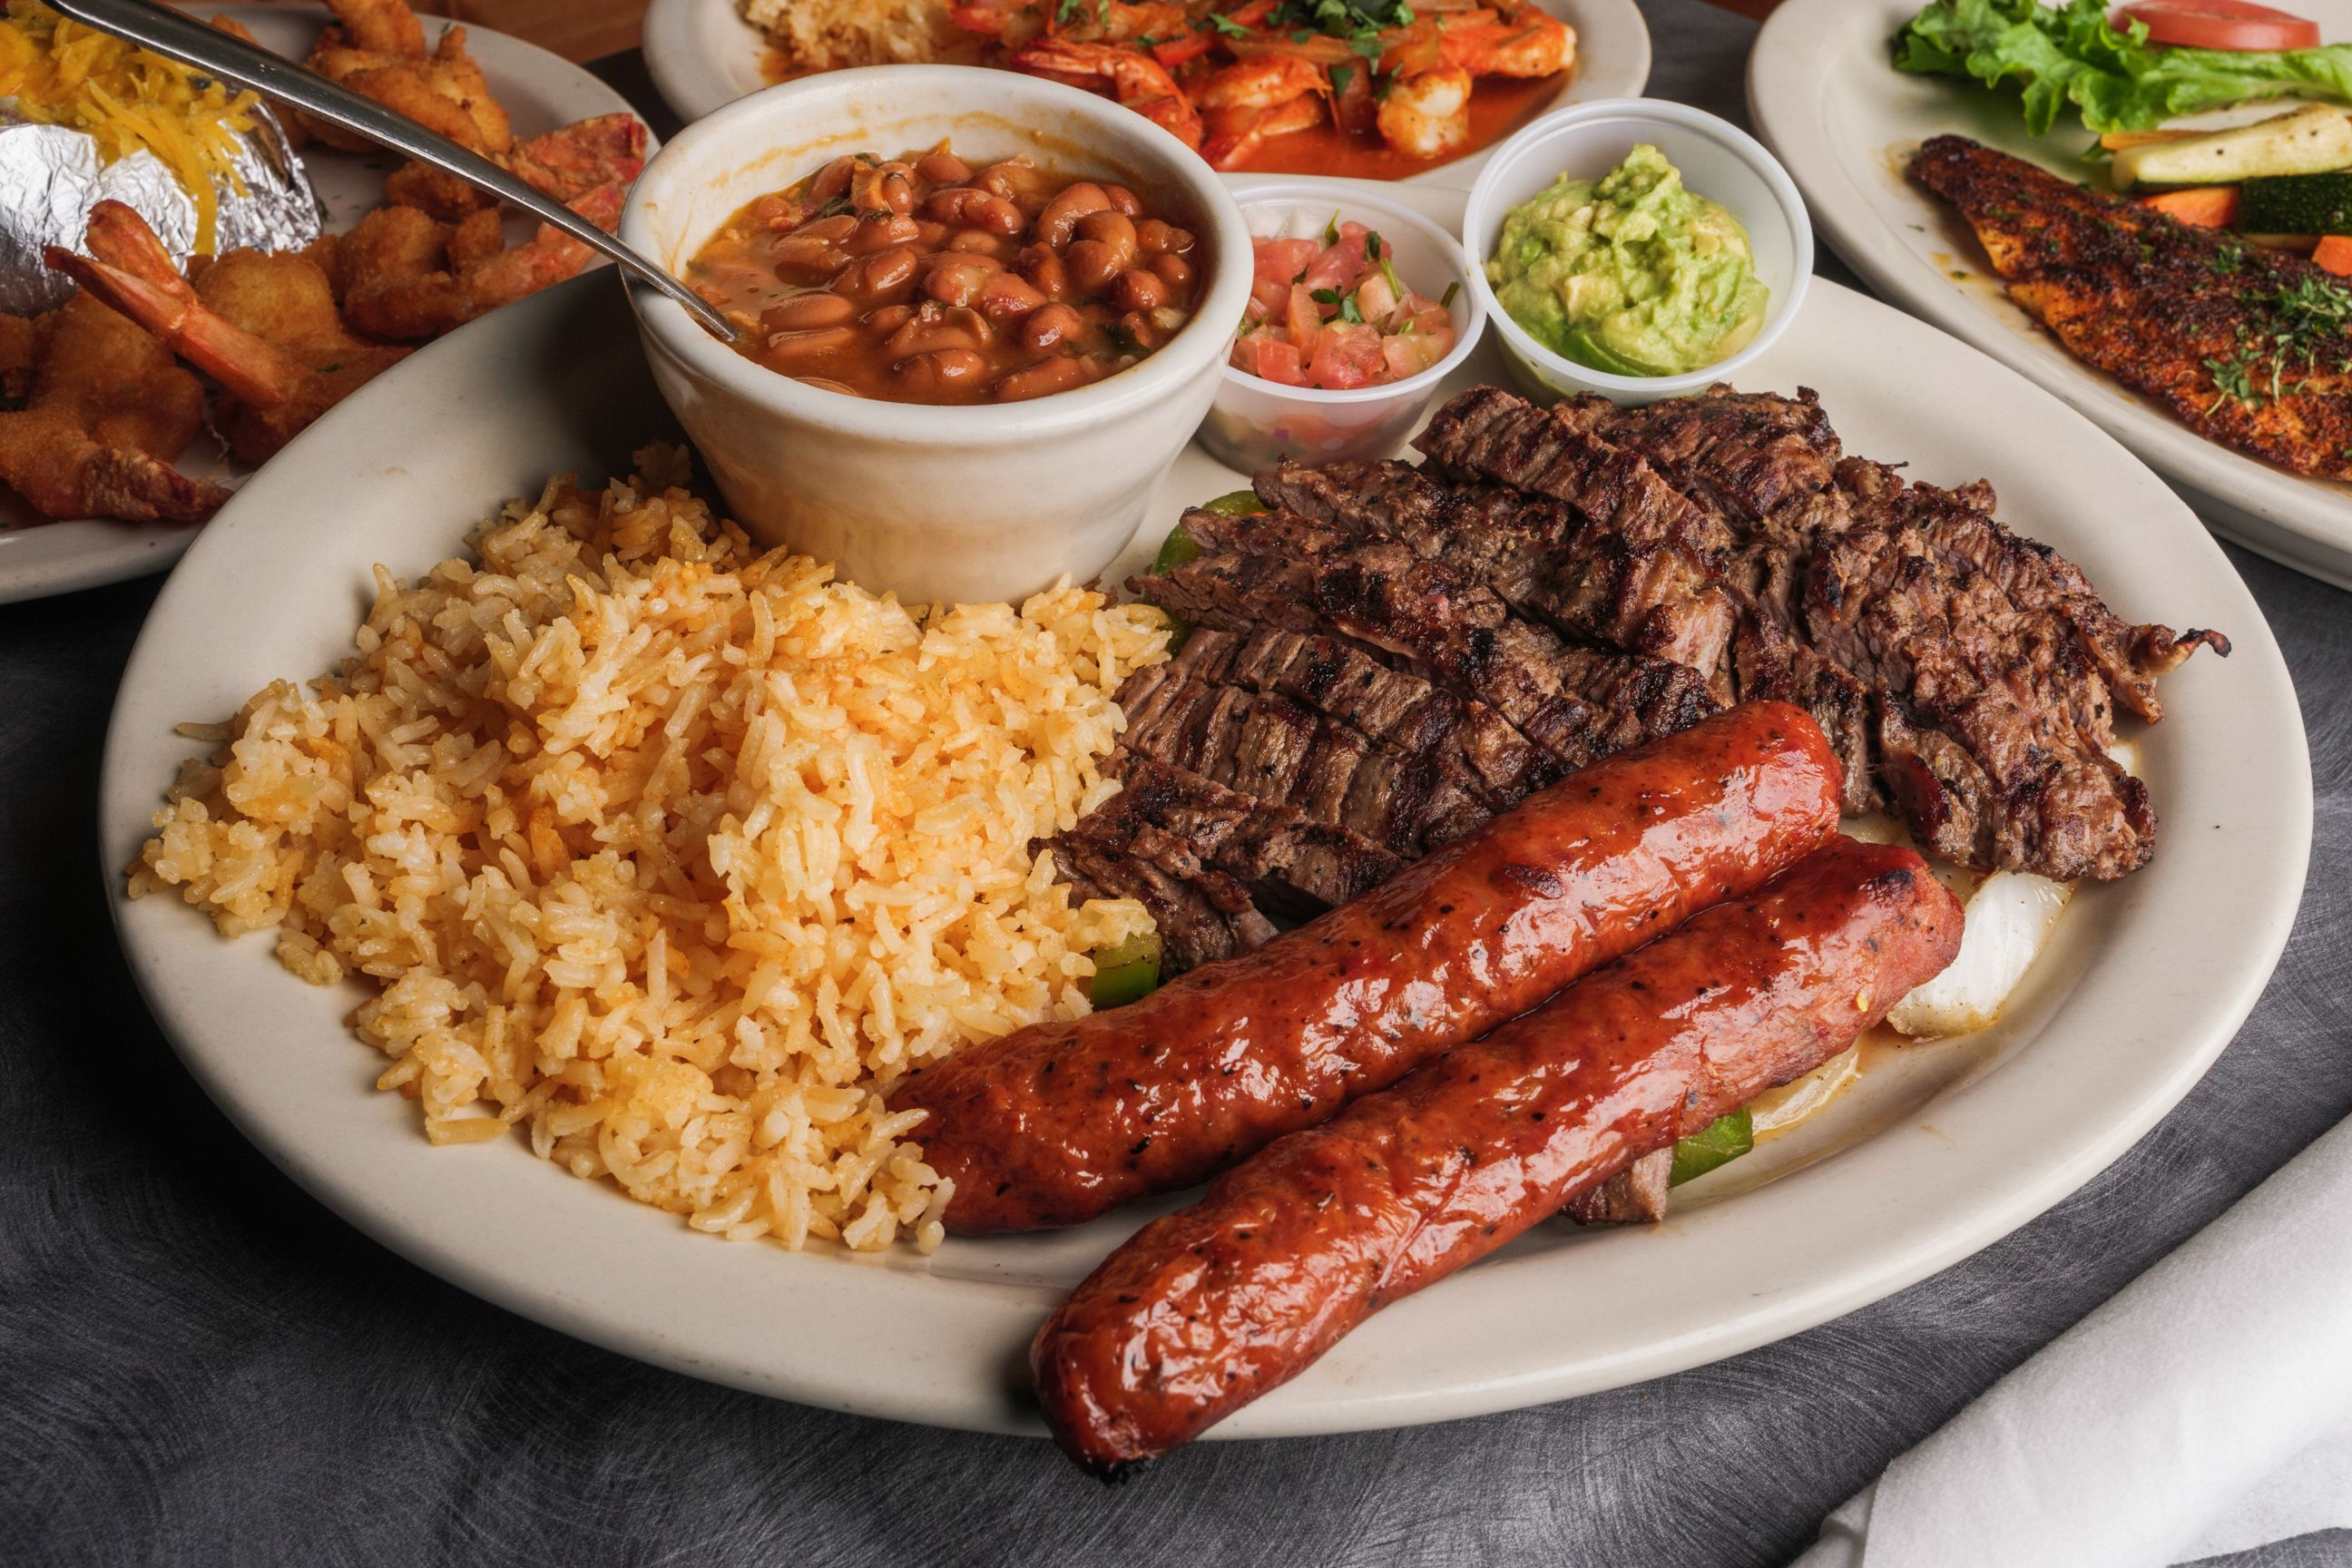 platter of rice, baked beans, beef, and sausage with cups of salsa and guacamole